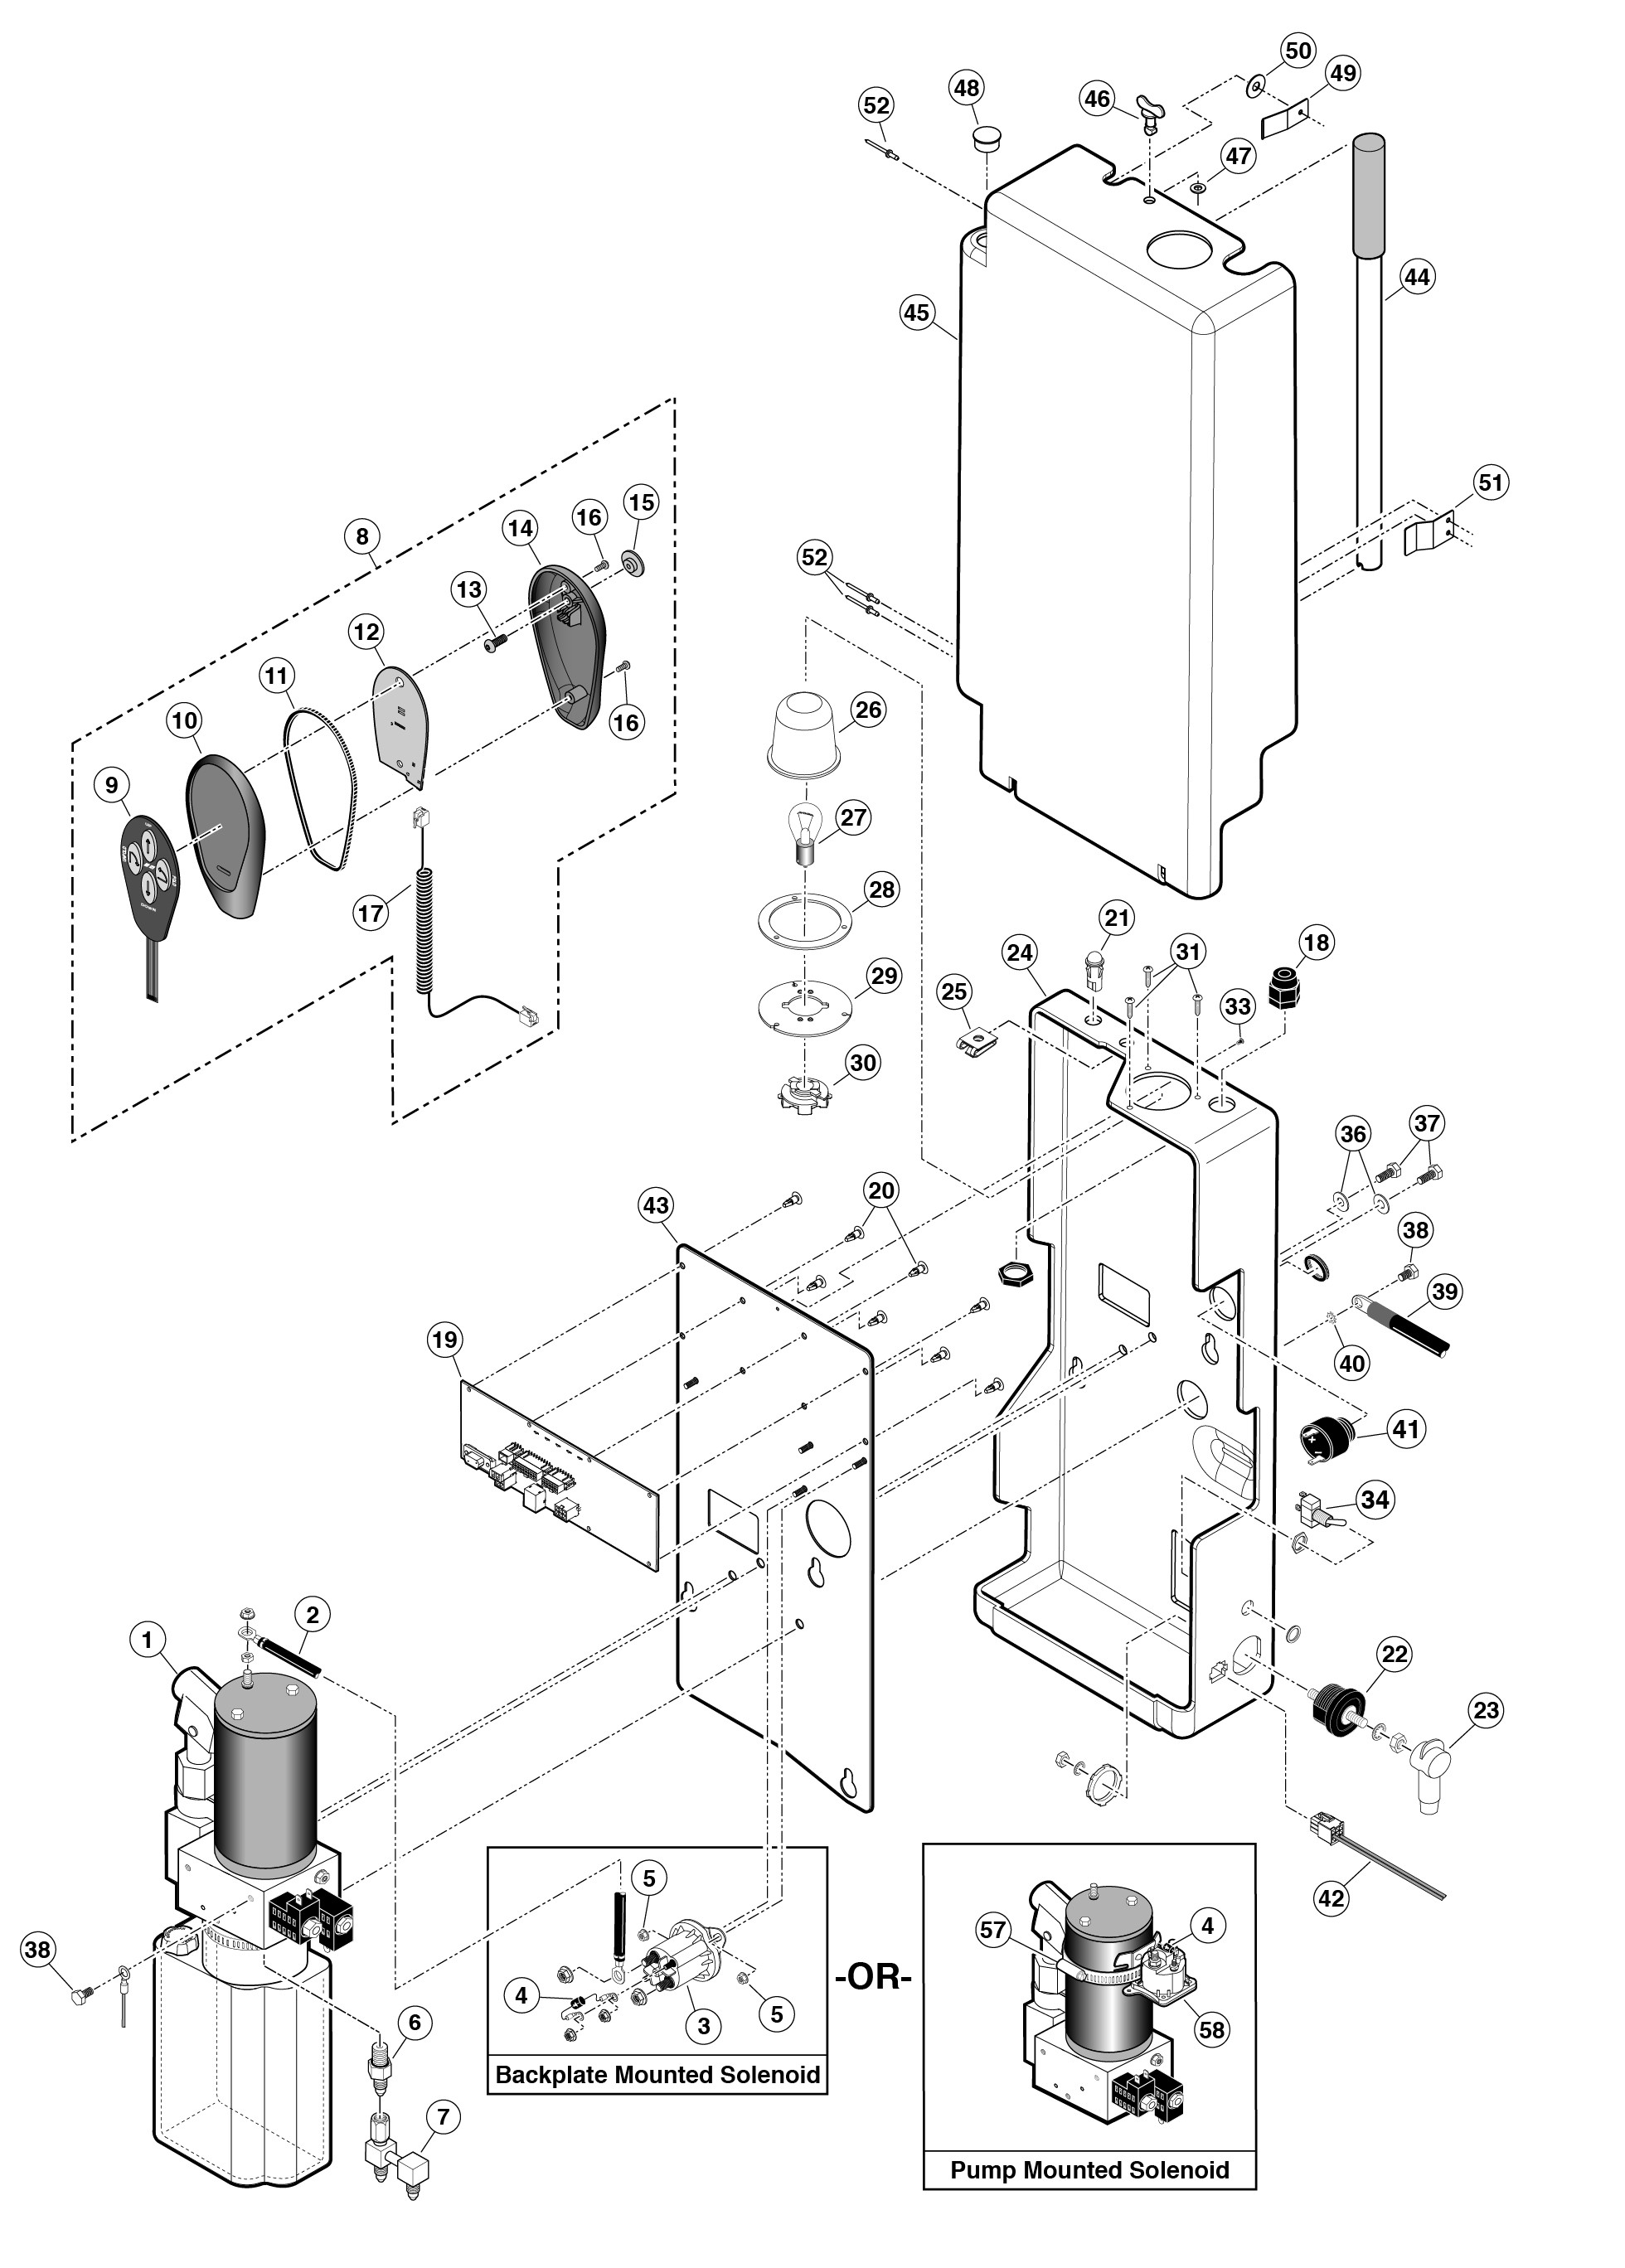 Leaf Spring assembly Diagram Braunability Wheelchair Lift Parts Century 1 Series A1 Of Leaf Spring assembly Diagram